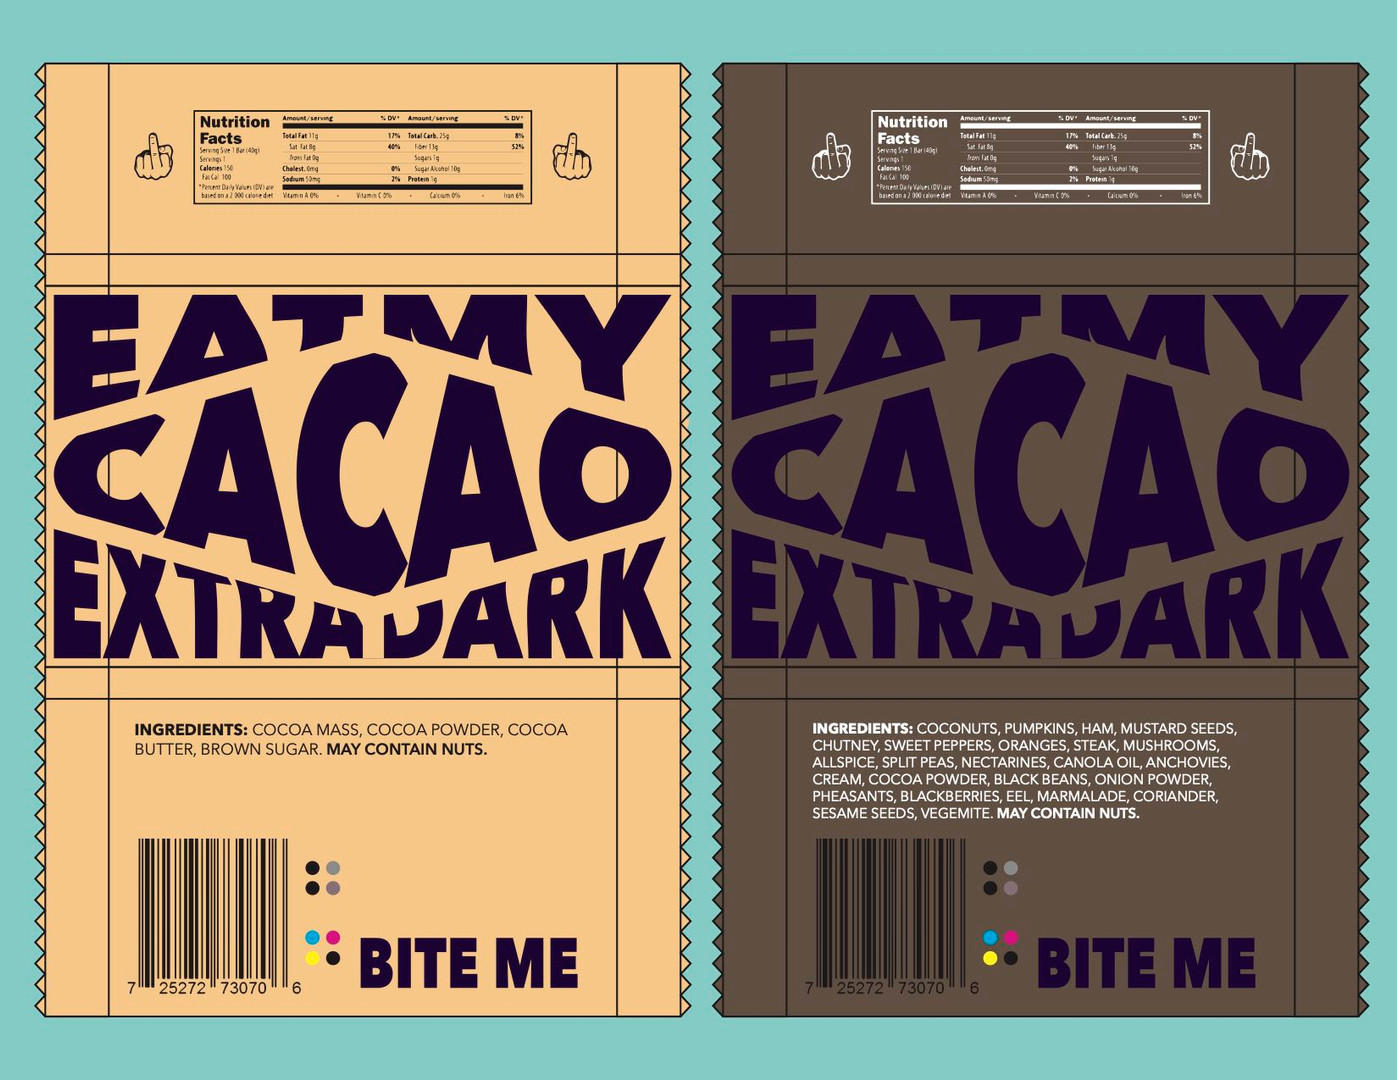 Eat My Extra Dark Cacao